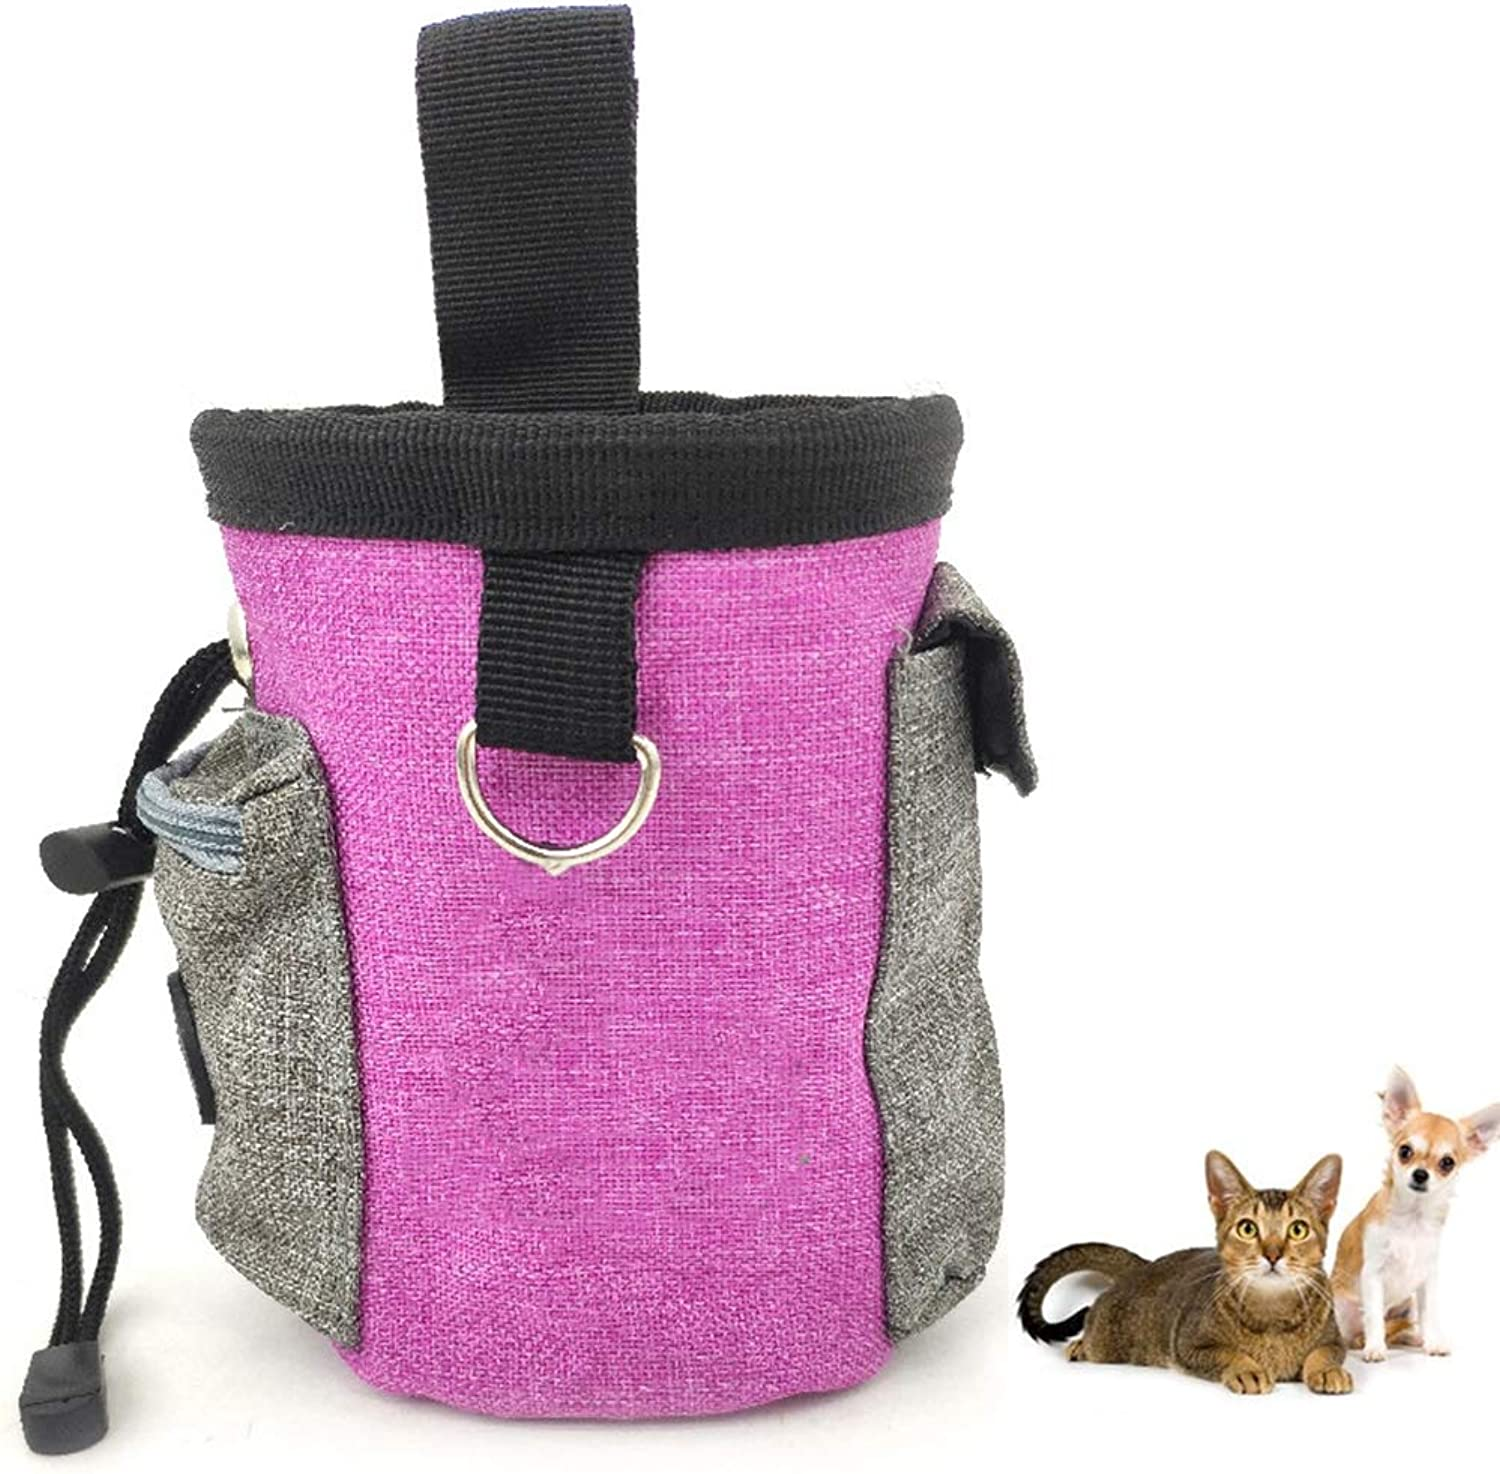 Portable Detachable Doggie Pet Feed Pocket Pouch Pet Dog Treat Pouch Dog Training Treat Bags Puppy Snack Reward Waist Bag, Resistant to Dirt and Easy to Clean